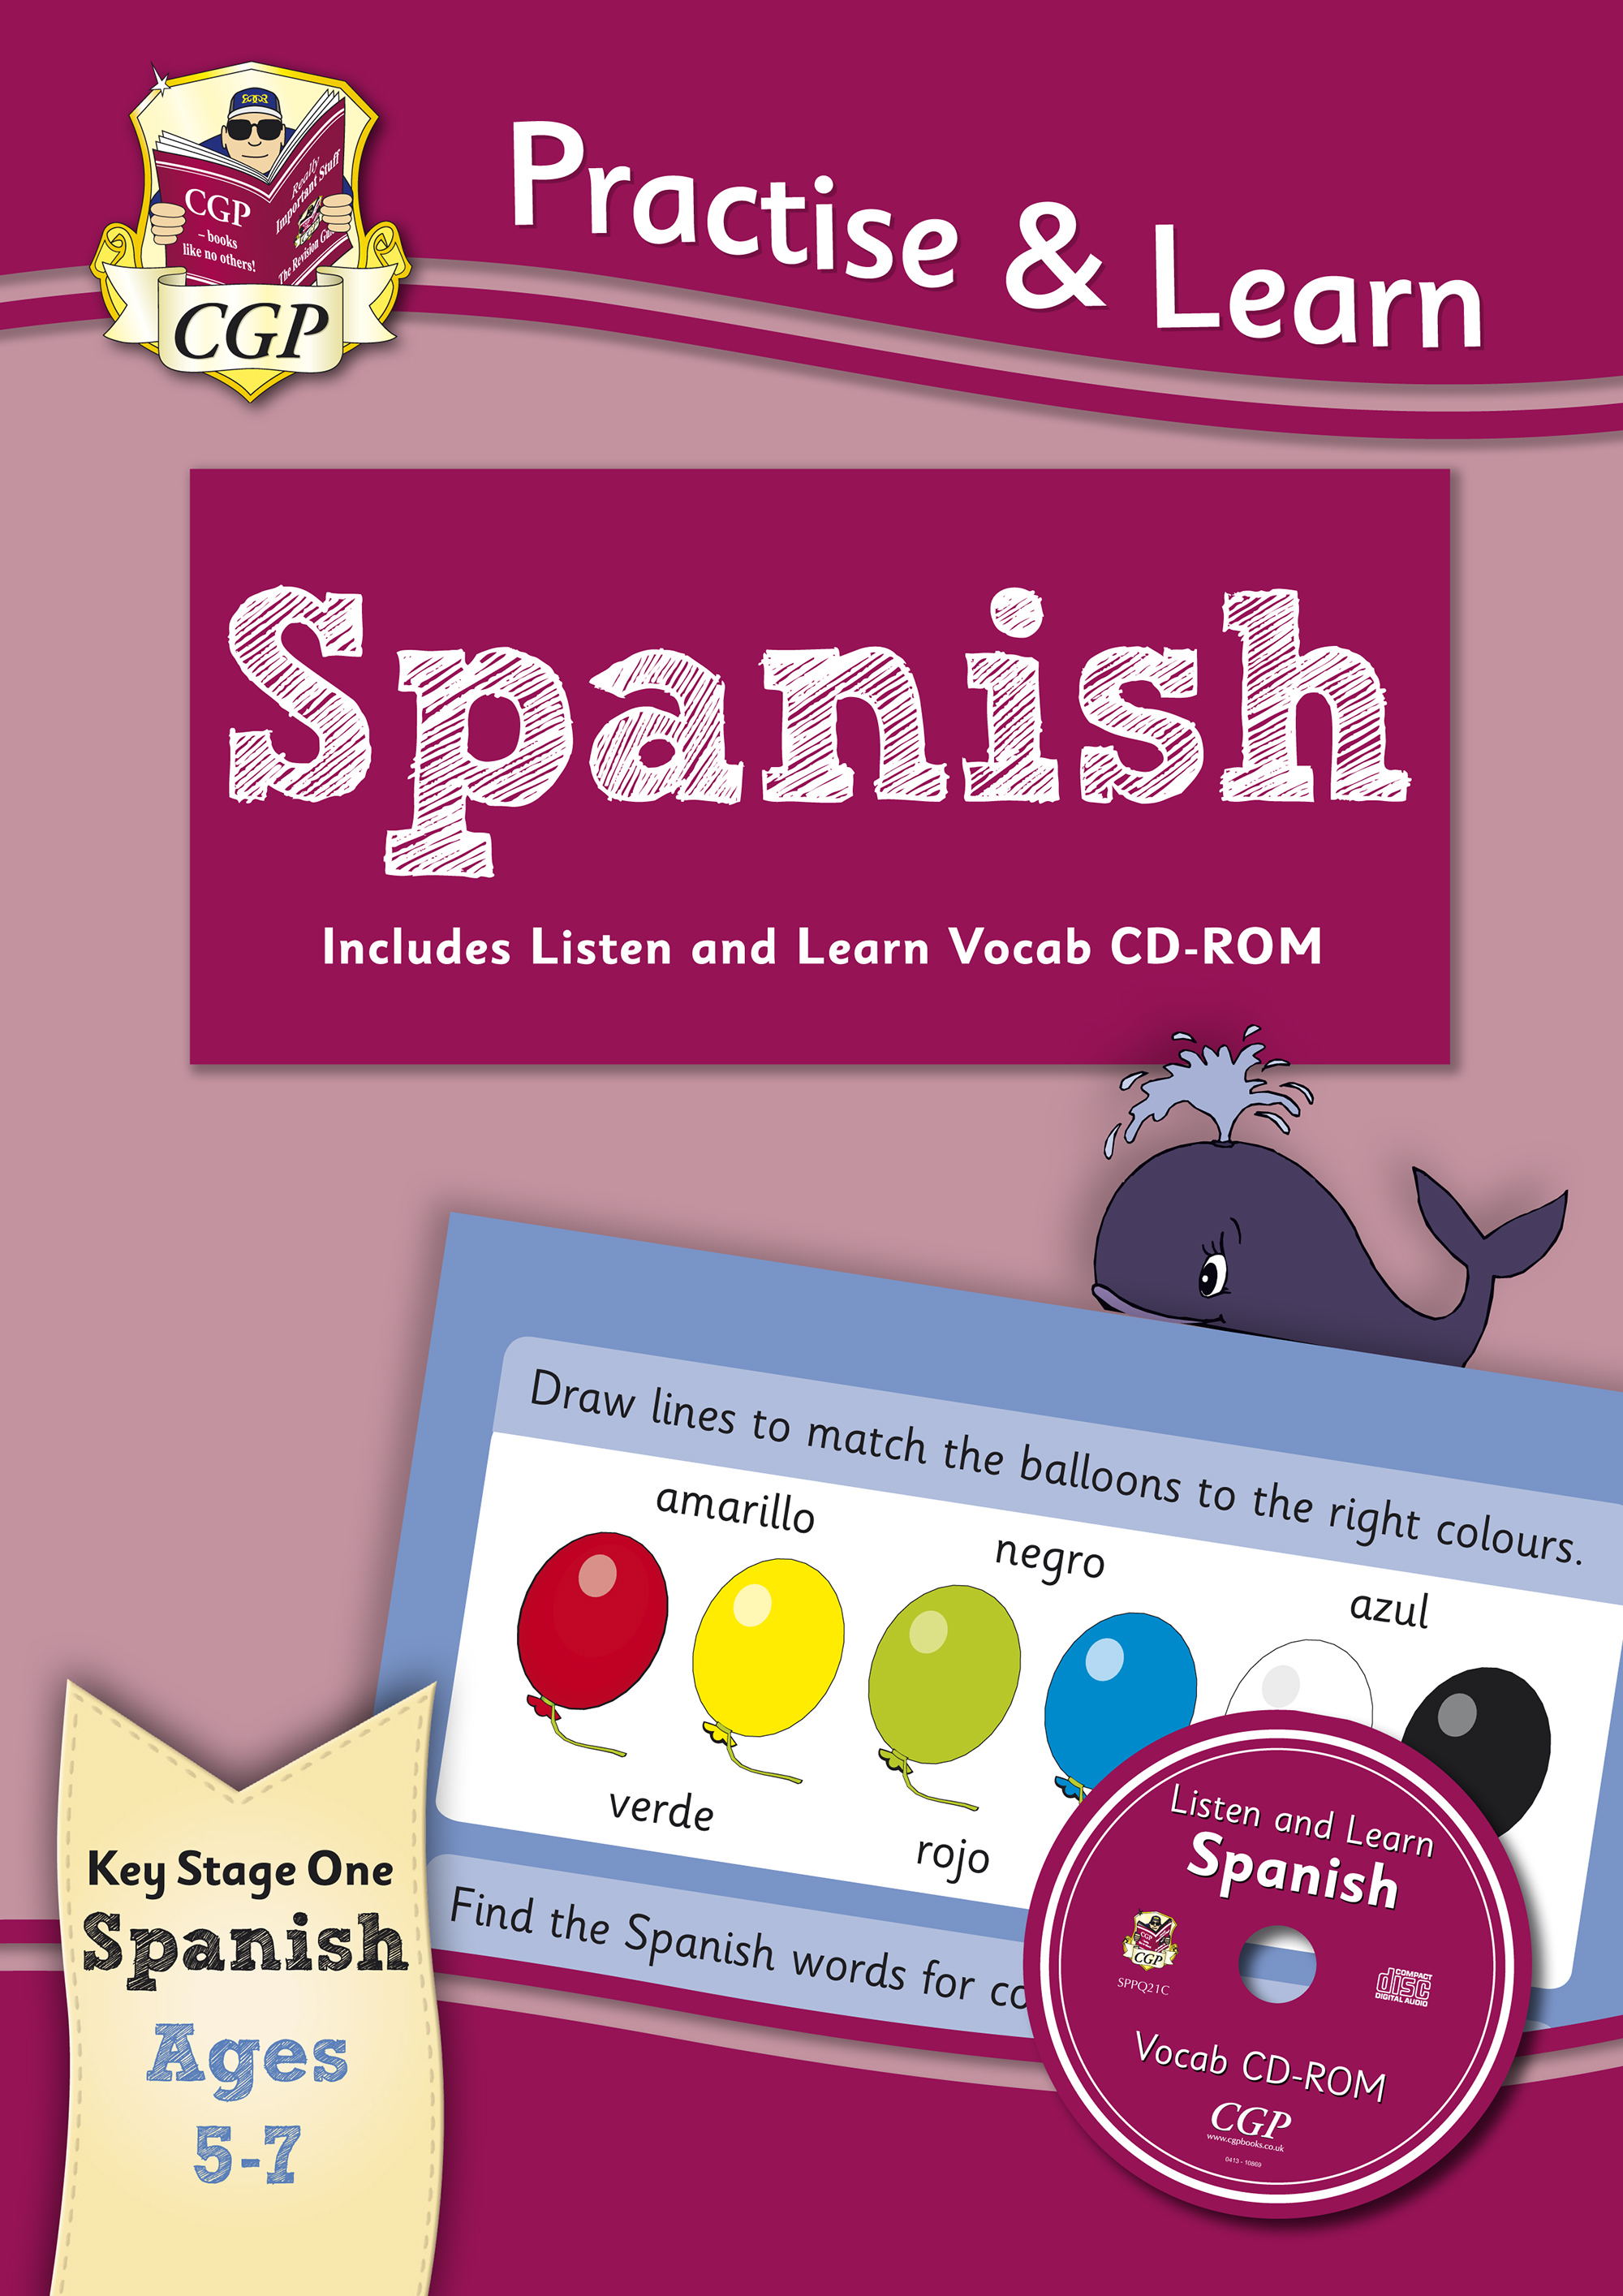 SPPQ12 - Practise & Learn: Spanish for Ages 5-7 - with vocab CD-ROM